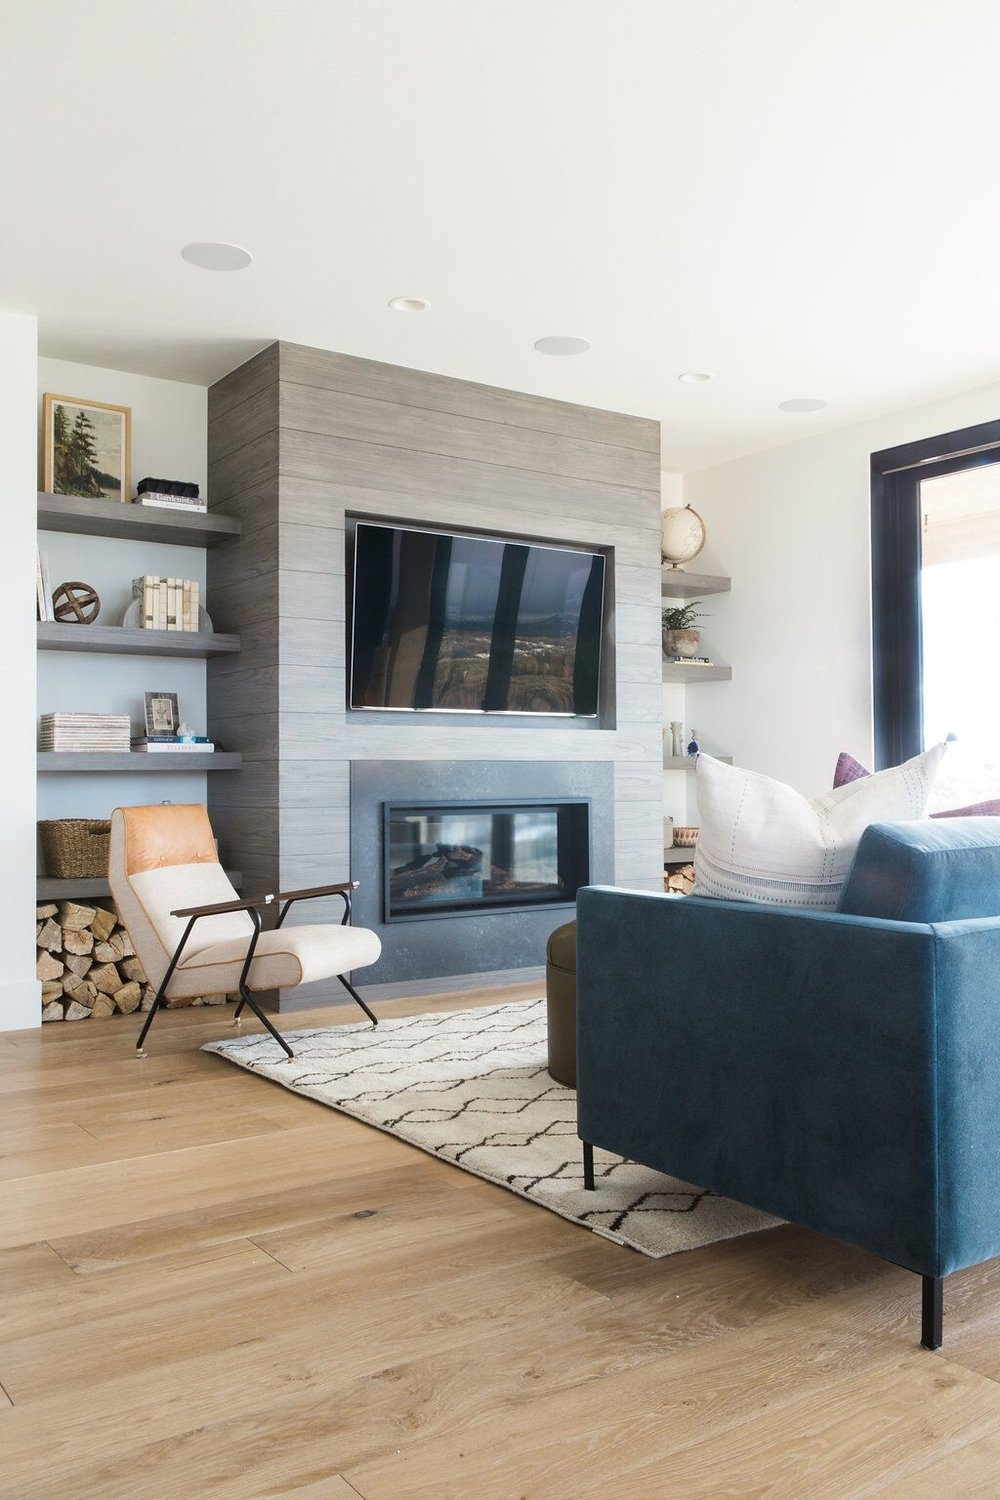 Living room with built-in shelf styling